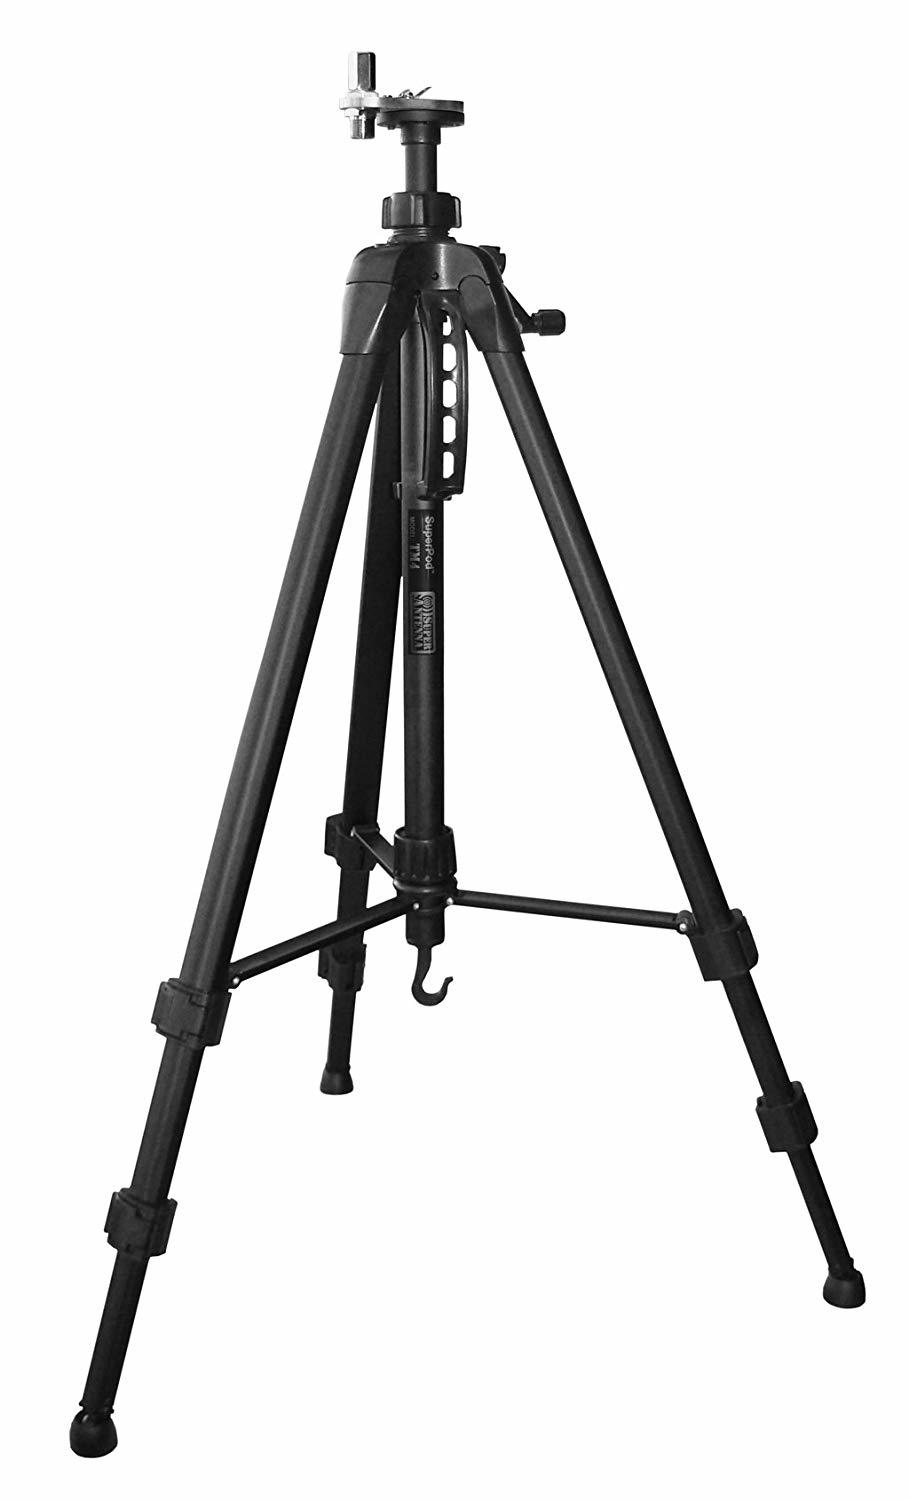 SUPER ANTENNA TM4 Superpod Large Portable Tripod for MP1